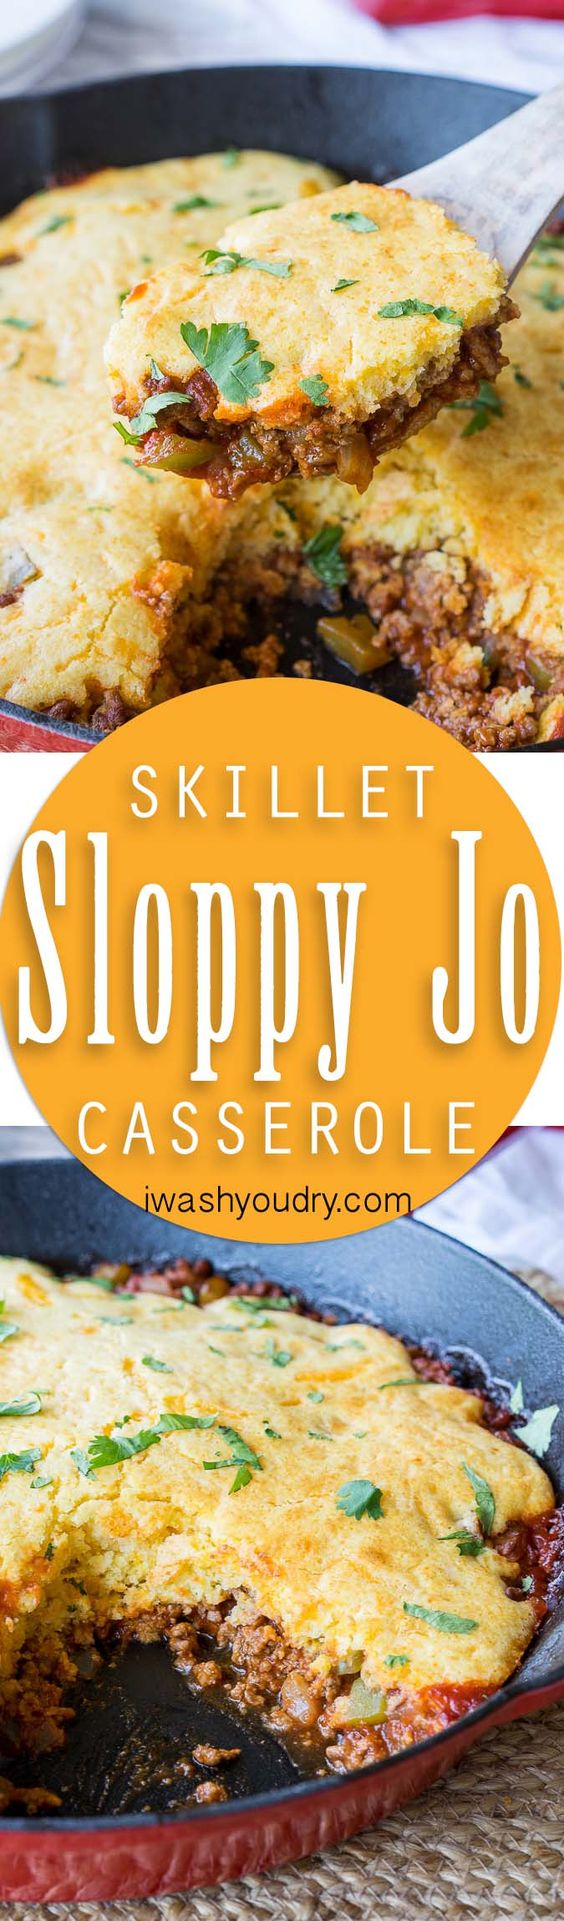 My family LOVED this One Skillet Sloppy Jo Cornbread Casserole! Everything gets cooked in one pan and there were NO leftovers! So yummy!